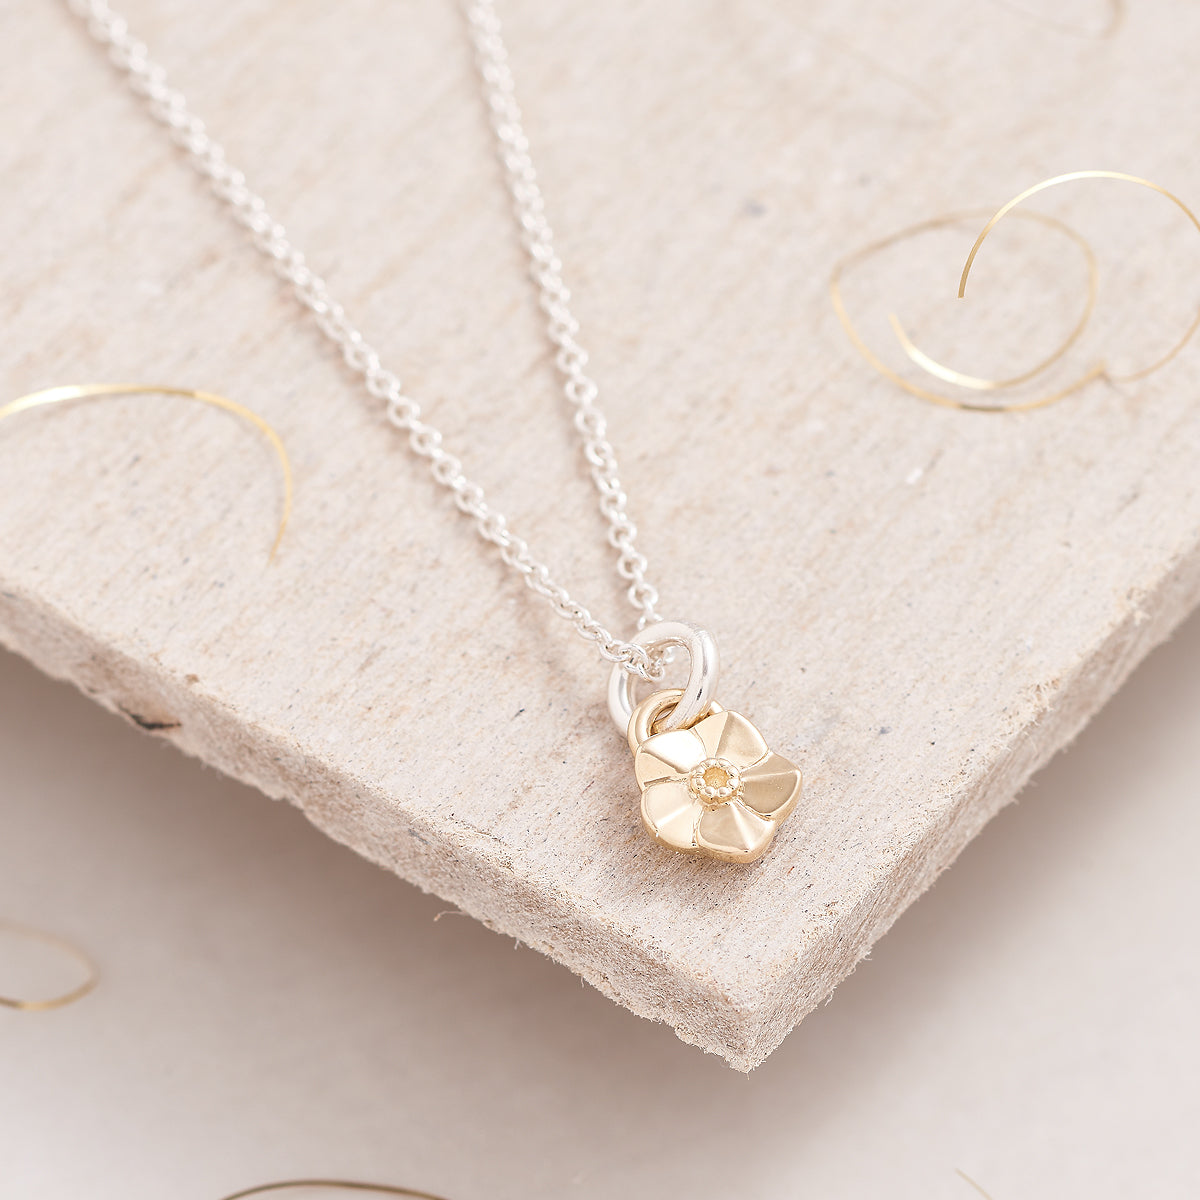 Tiny Forget-Me-Not Gold Charm Necklace Memorial Gift Scarlett Jewellery